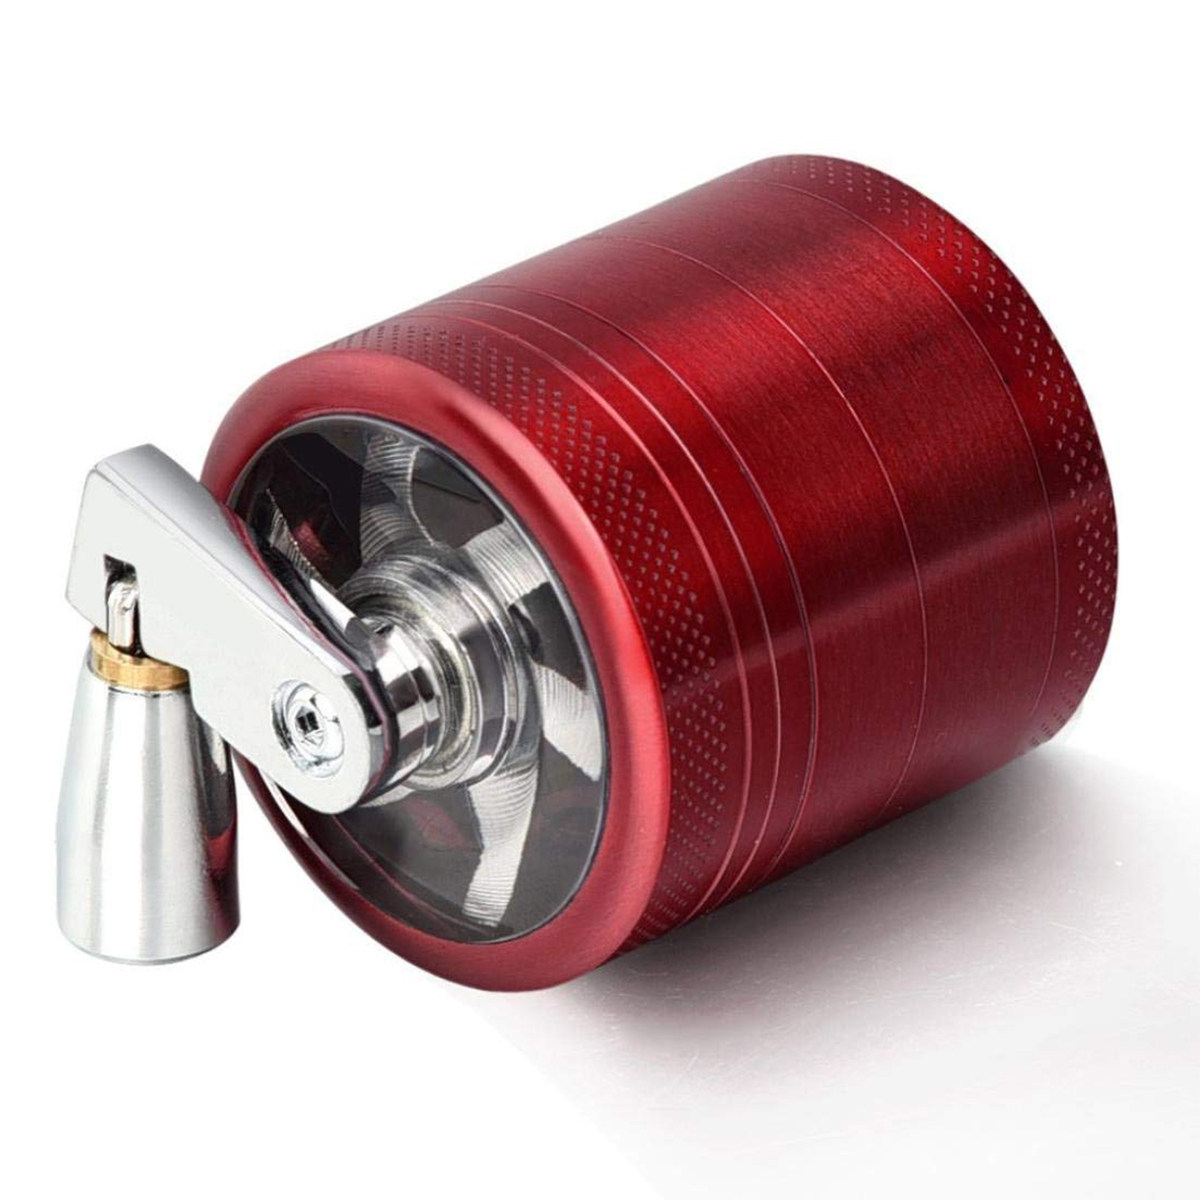 4-layer Zinc Alloy Metal Herb Crusher Grinder with Mill Handle Spices Grinder Tobacco Leaf Crusher Smoke Muller 55mm